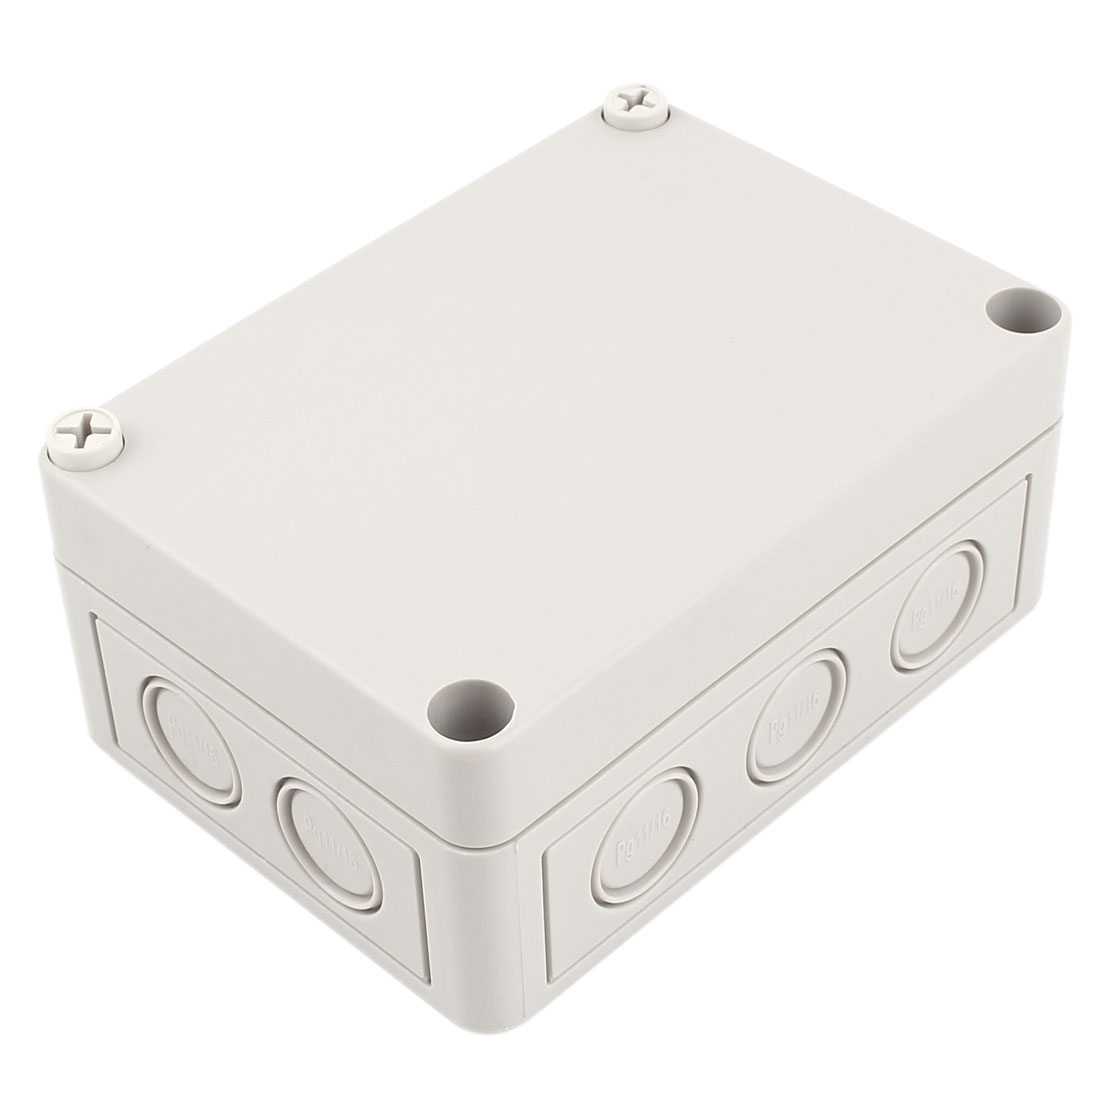 130mm x 93mm x 57mm Waterproof Plastic DIY Junction Box Power Protection Case